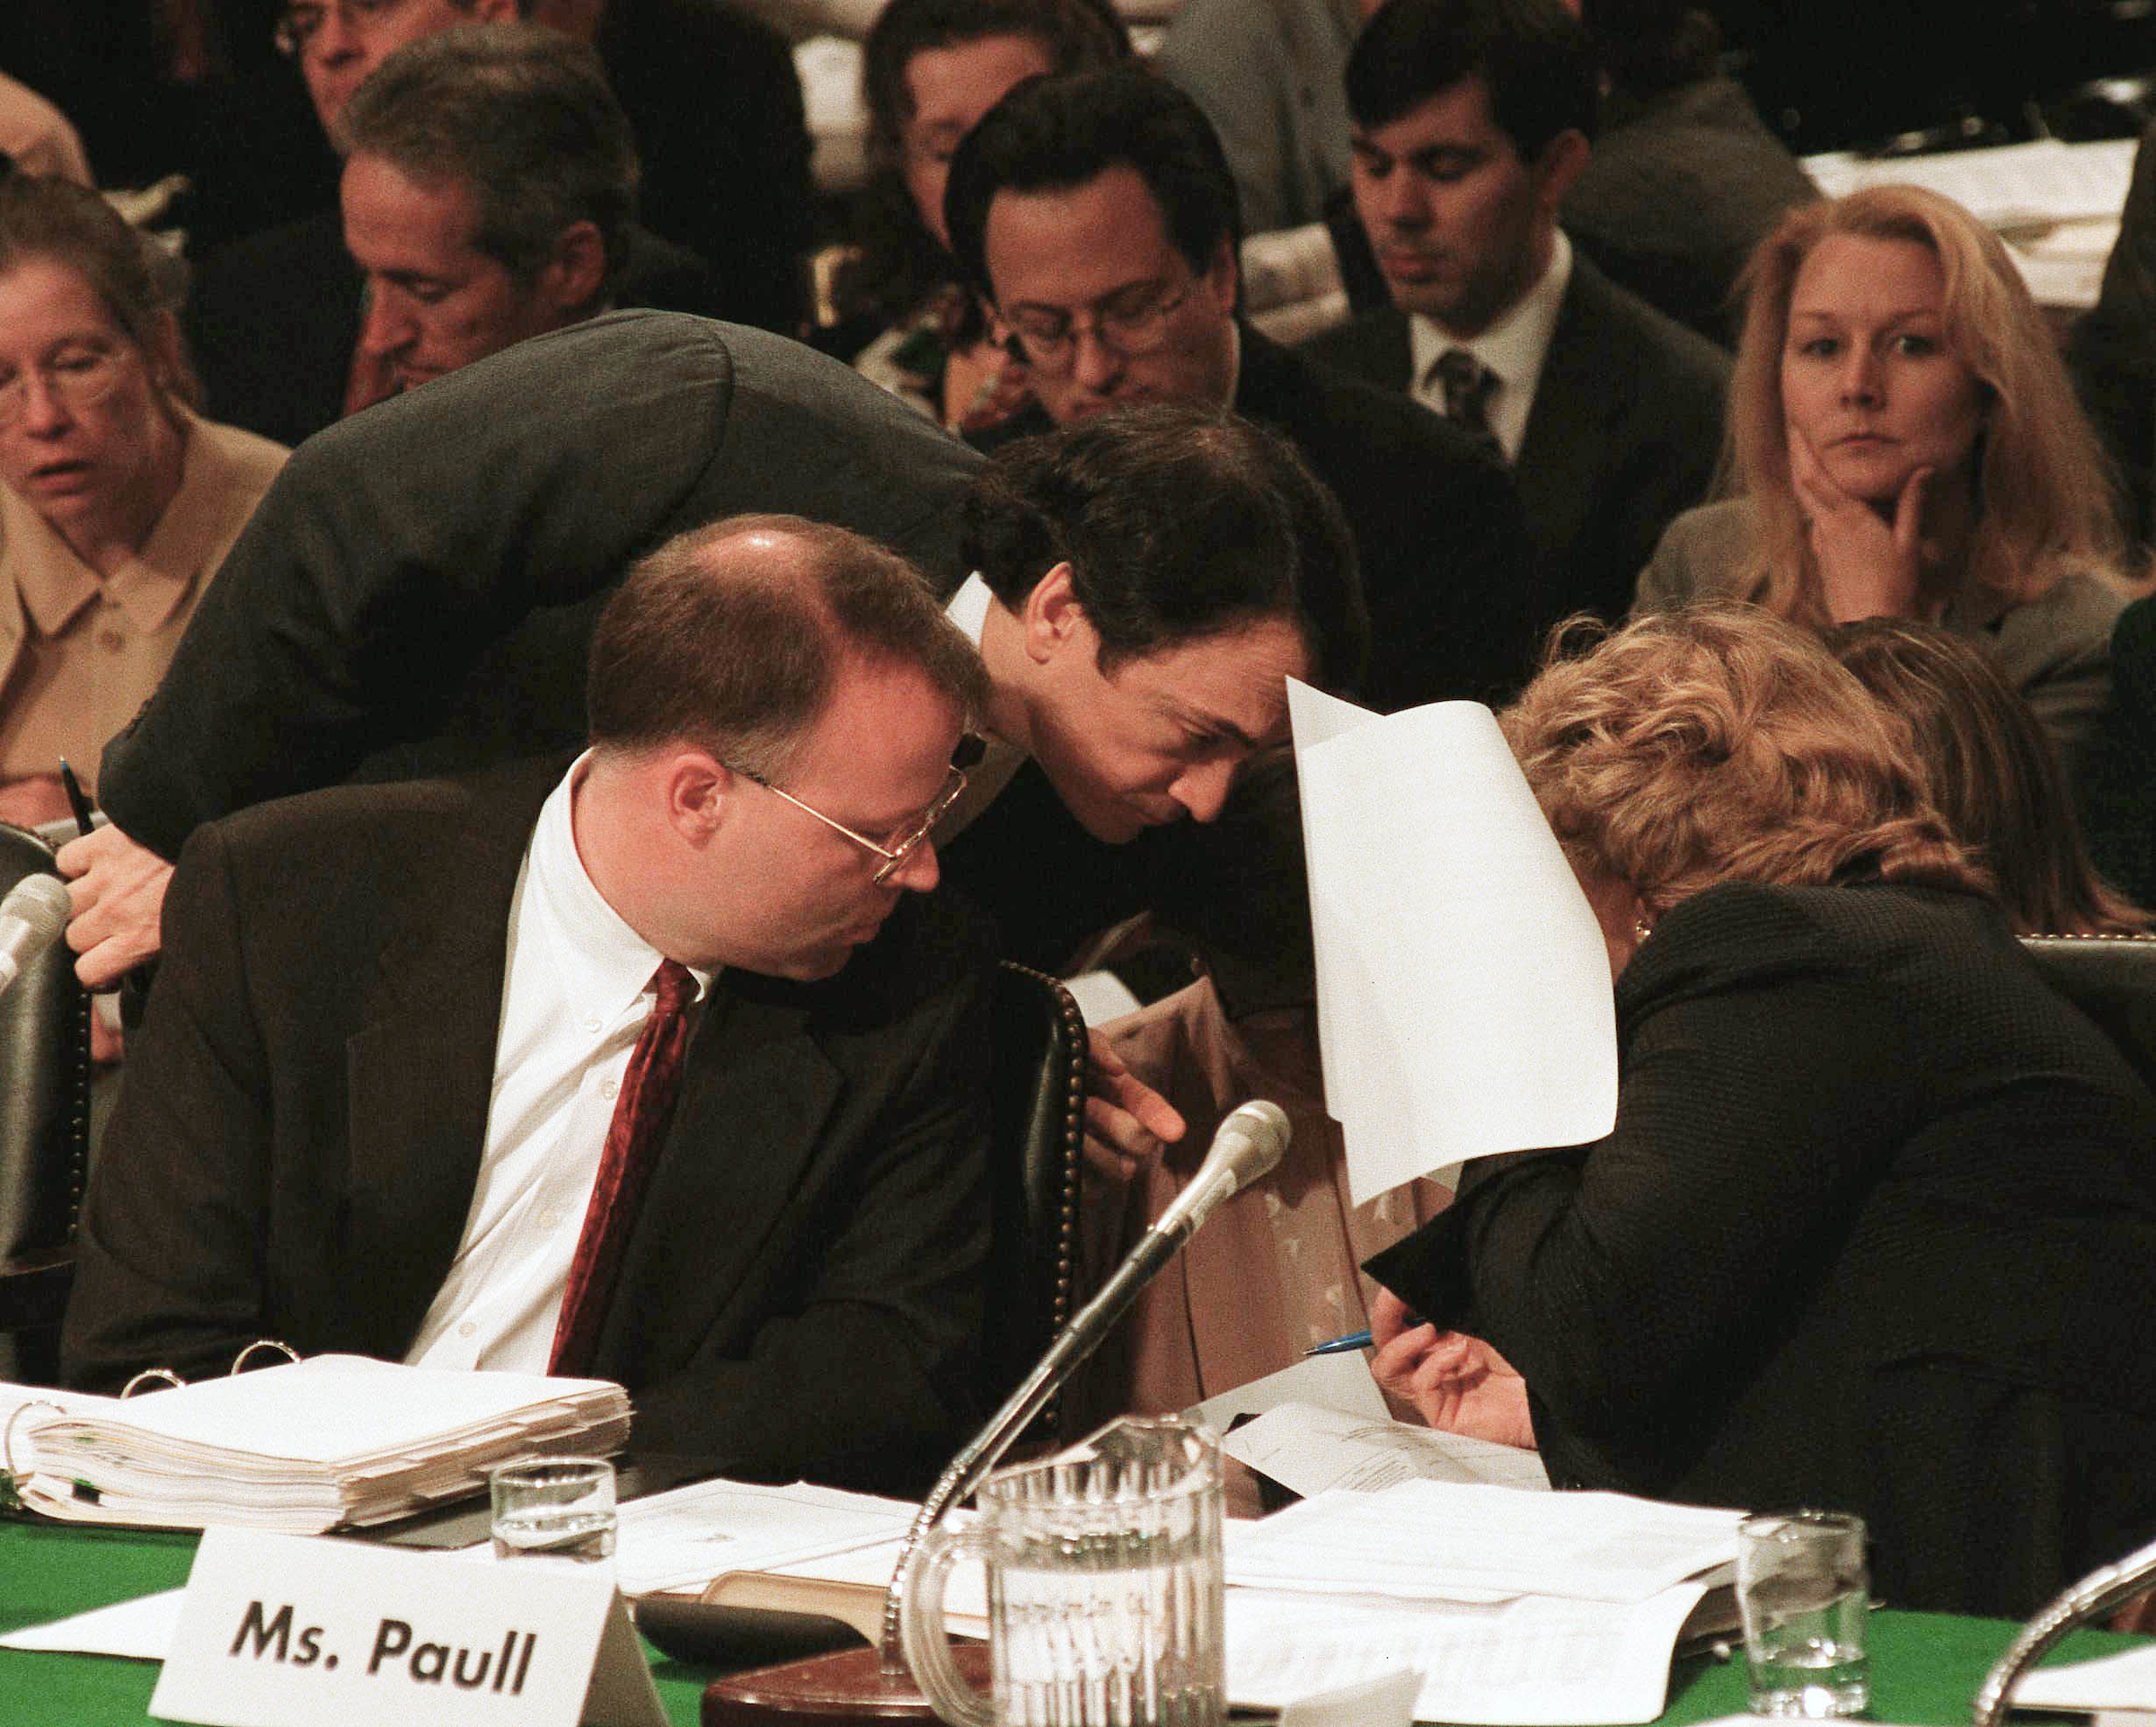 5/15/01.TAX CUT MARKUP--Russell W. Sullivan, minority tax counsel for Senate Finance, Mark Alan Prater, GOP chief tax counsel for Senate Finance, and Lindy Paull, chief of staff with the Joint Committee on Taxation, consult during the Senate Finance markup..CONGRESSIONAL QUARTERLY PHOTO BY SCOTT J. FERRELL